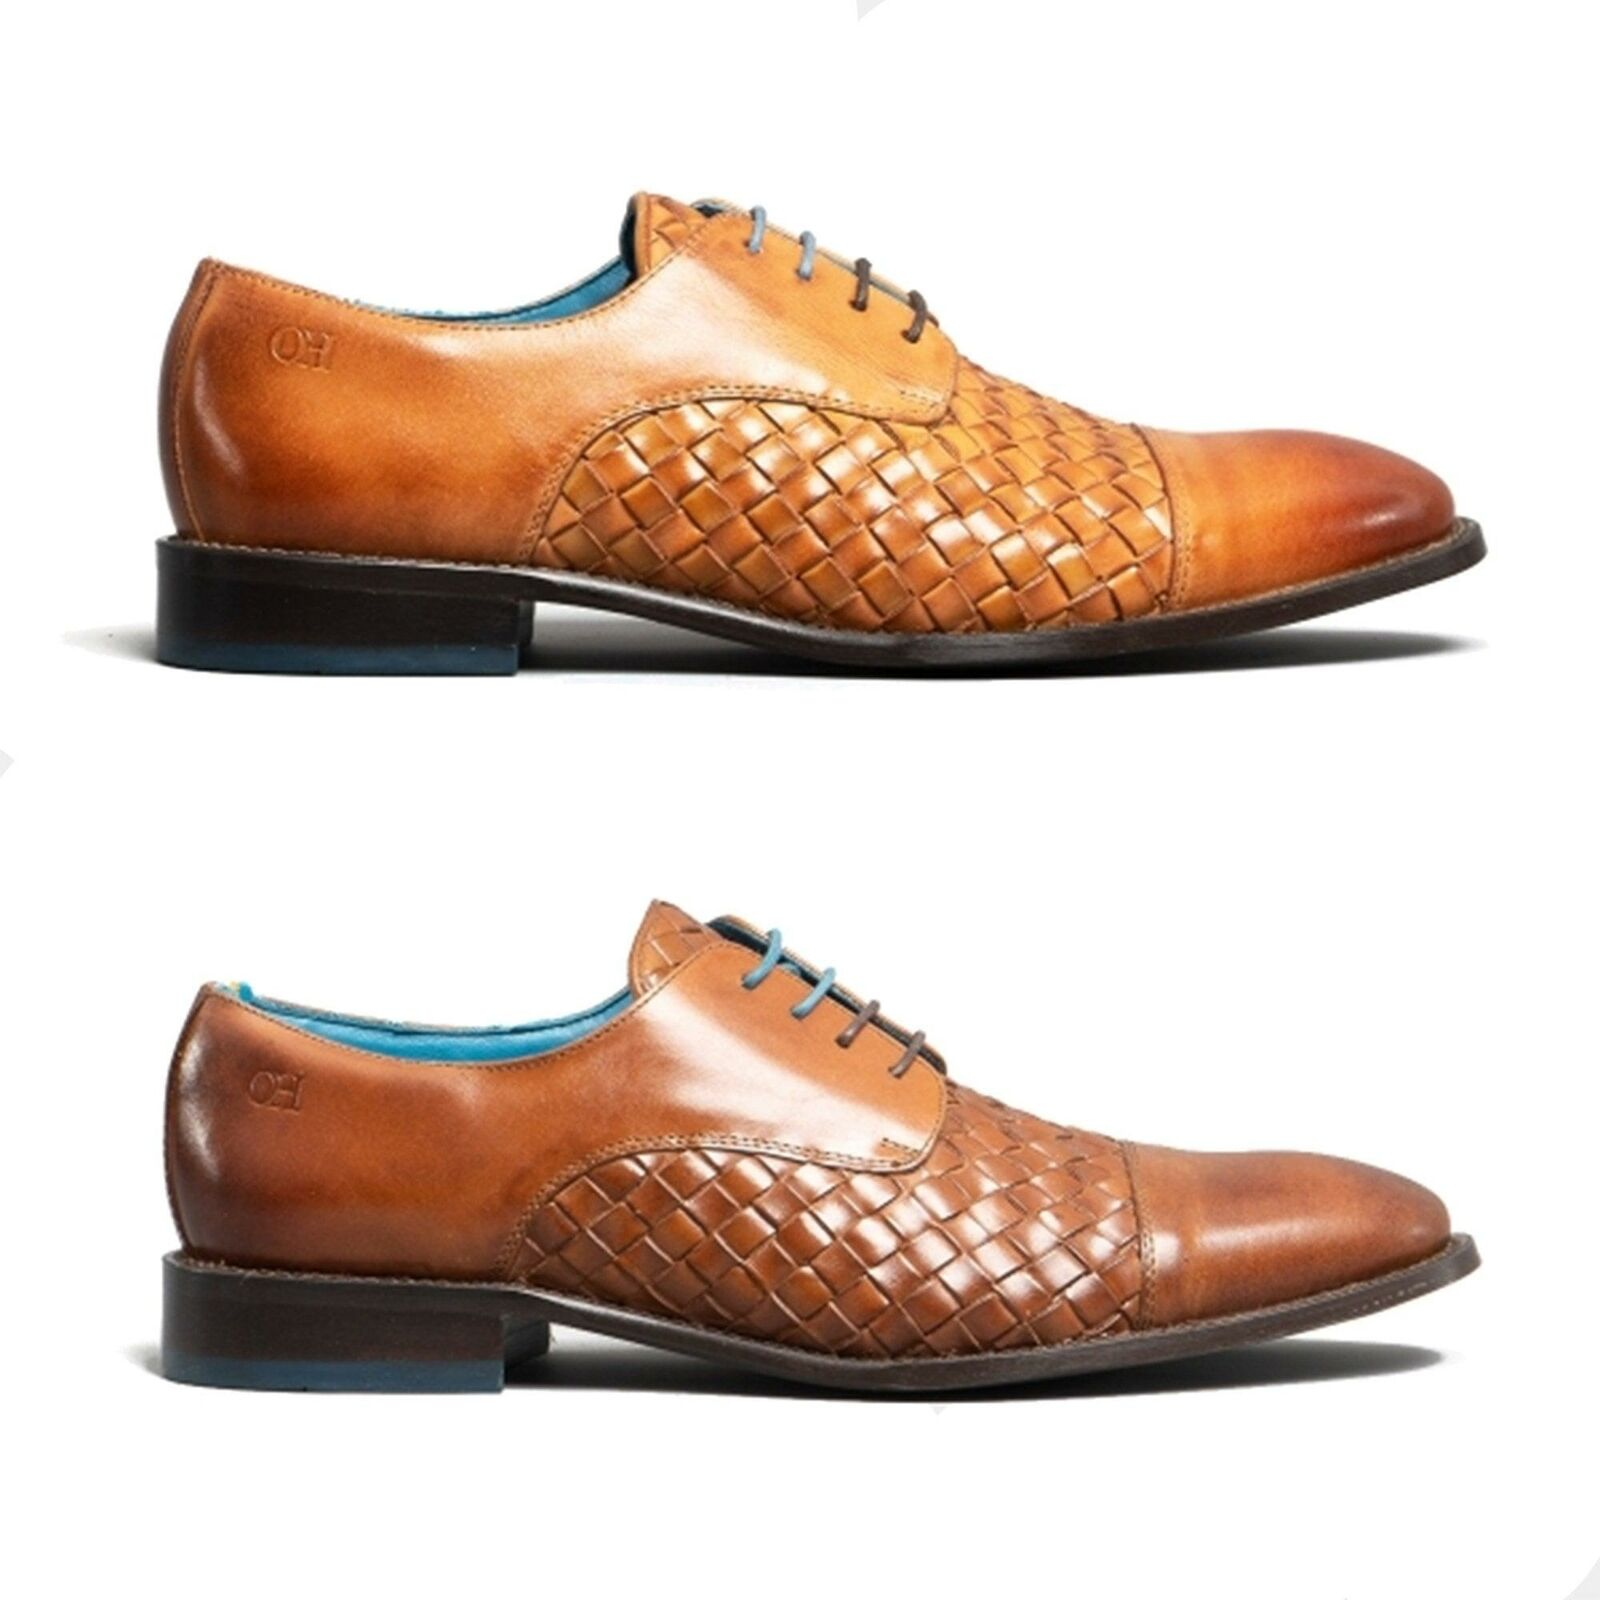 Oswin Hyde HEATH Mens Real High Quality Leather Woven Lace-Up Smart Derby schuhe